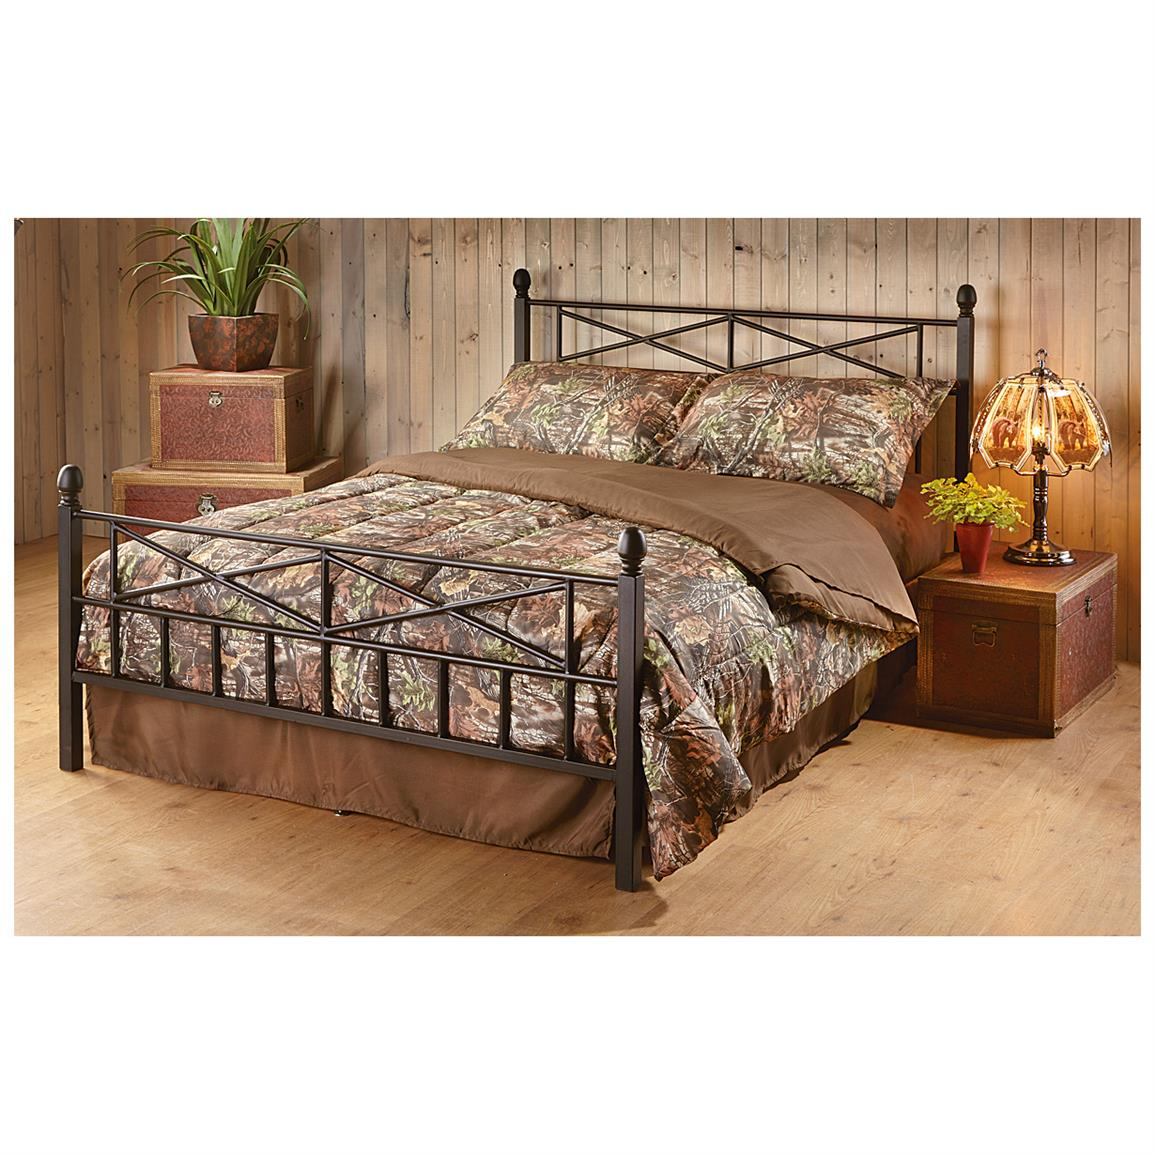 Tranquil Sleep Decorative Metal Bed Frame